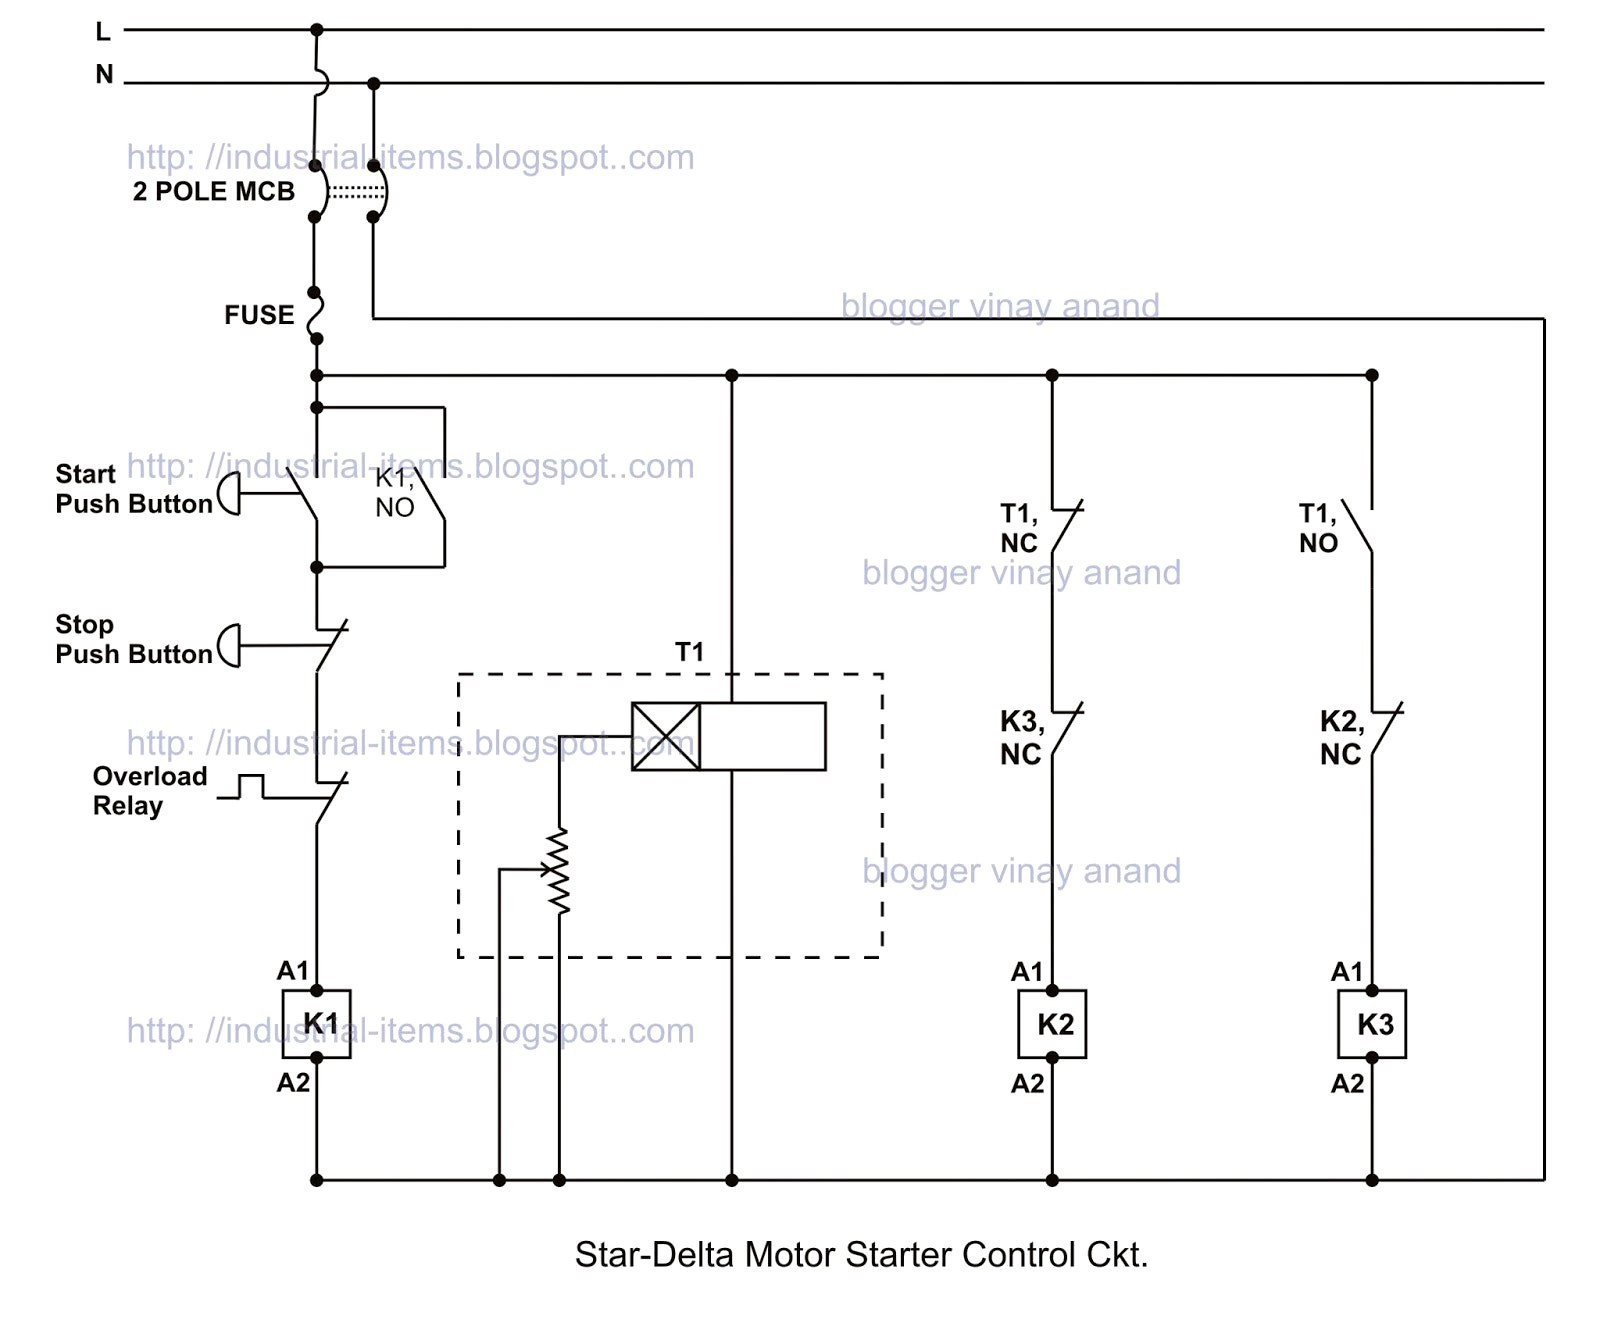 Wiring Diagram for Star Delta Motor Starter Fresh Symbols Extraordinary Tutorials Articles Star Delta Starter theory